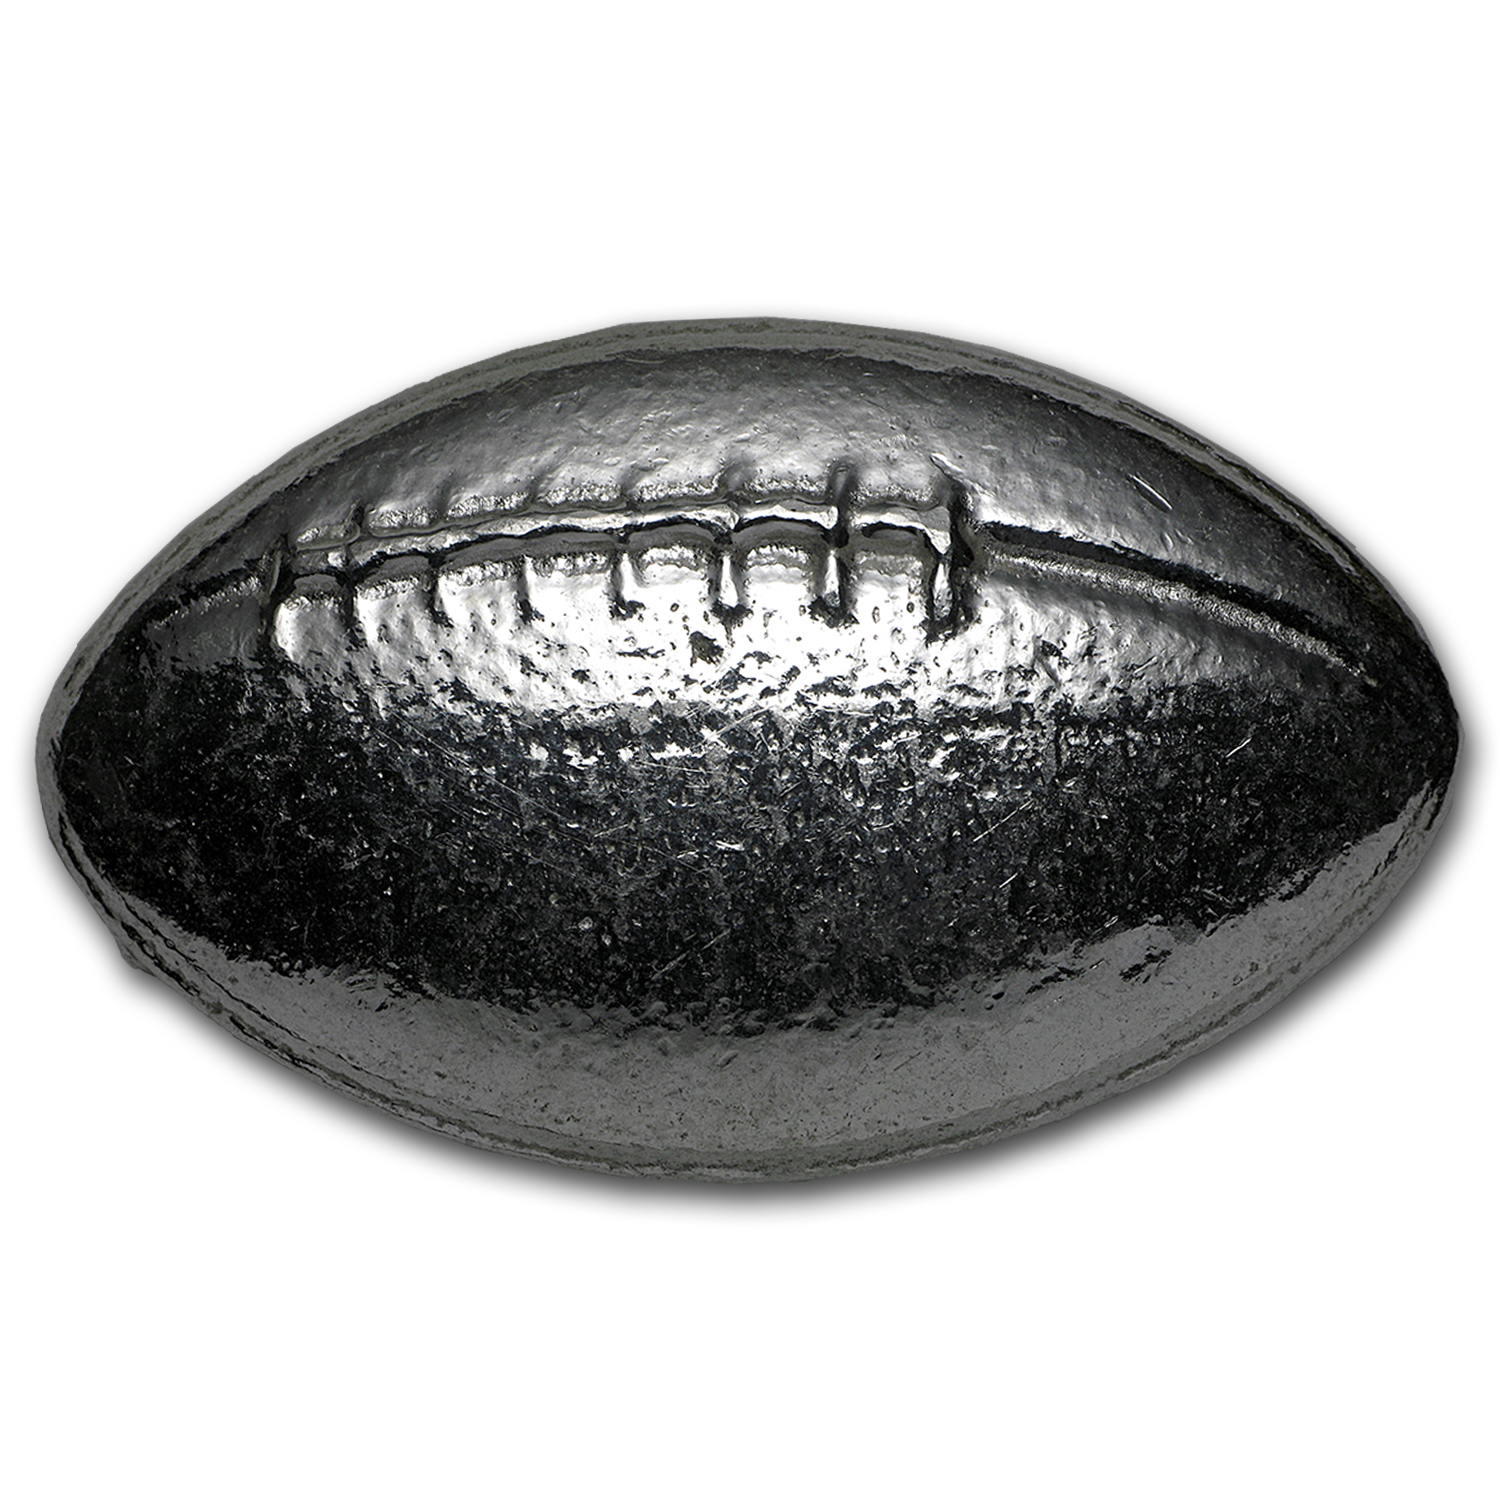 3 oz Silver Bar - Monarch Football